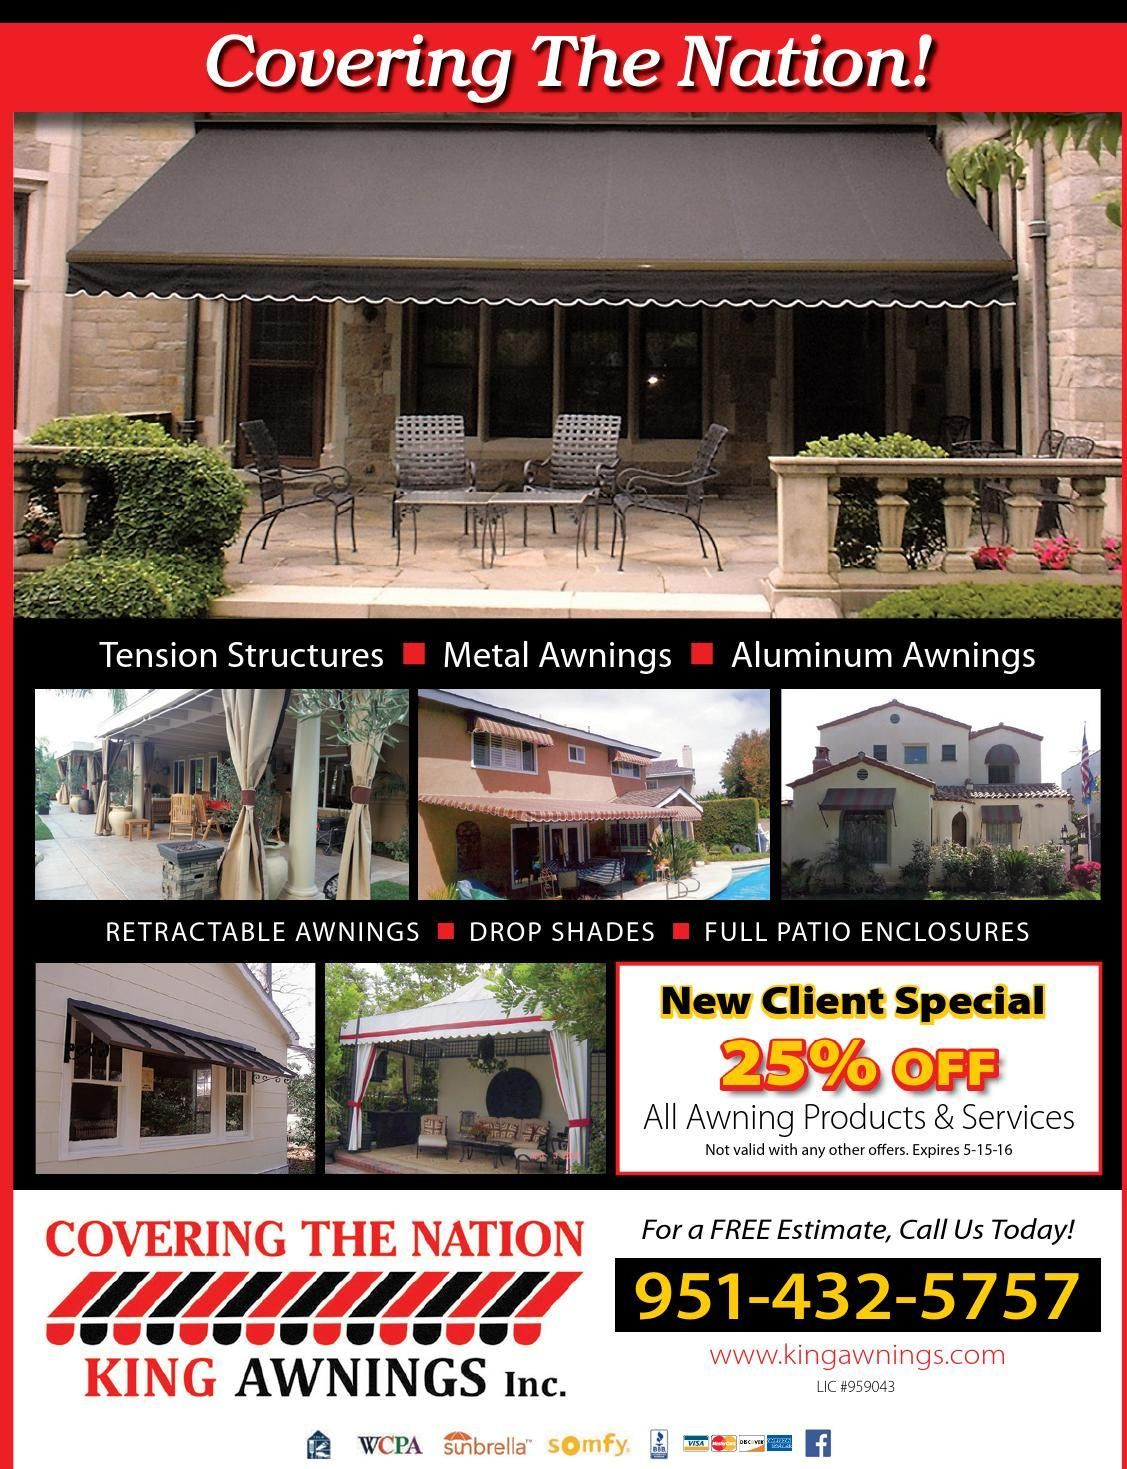 Just Home Magazine Riv April 2016 Issue Clippedonissuu House And Home Magazine Home Patio Enclosures